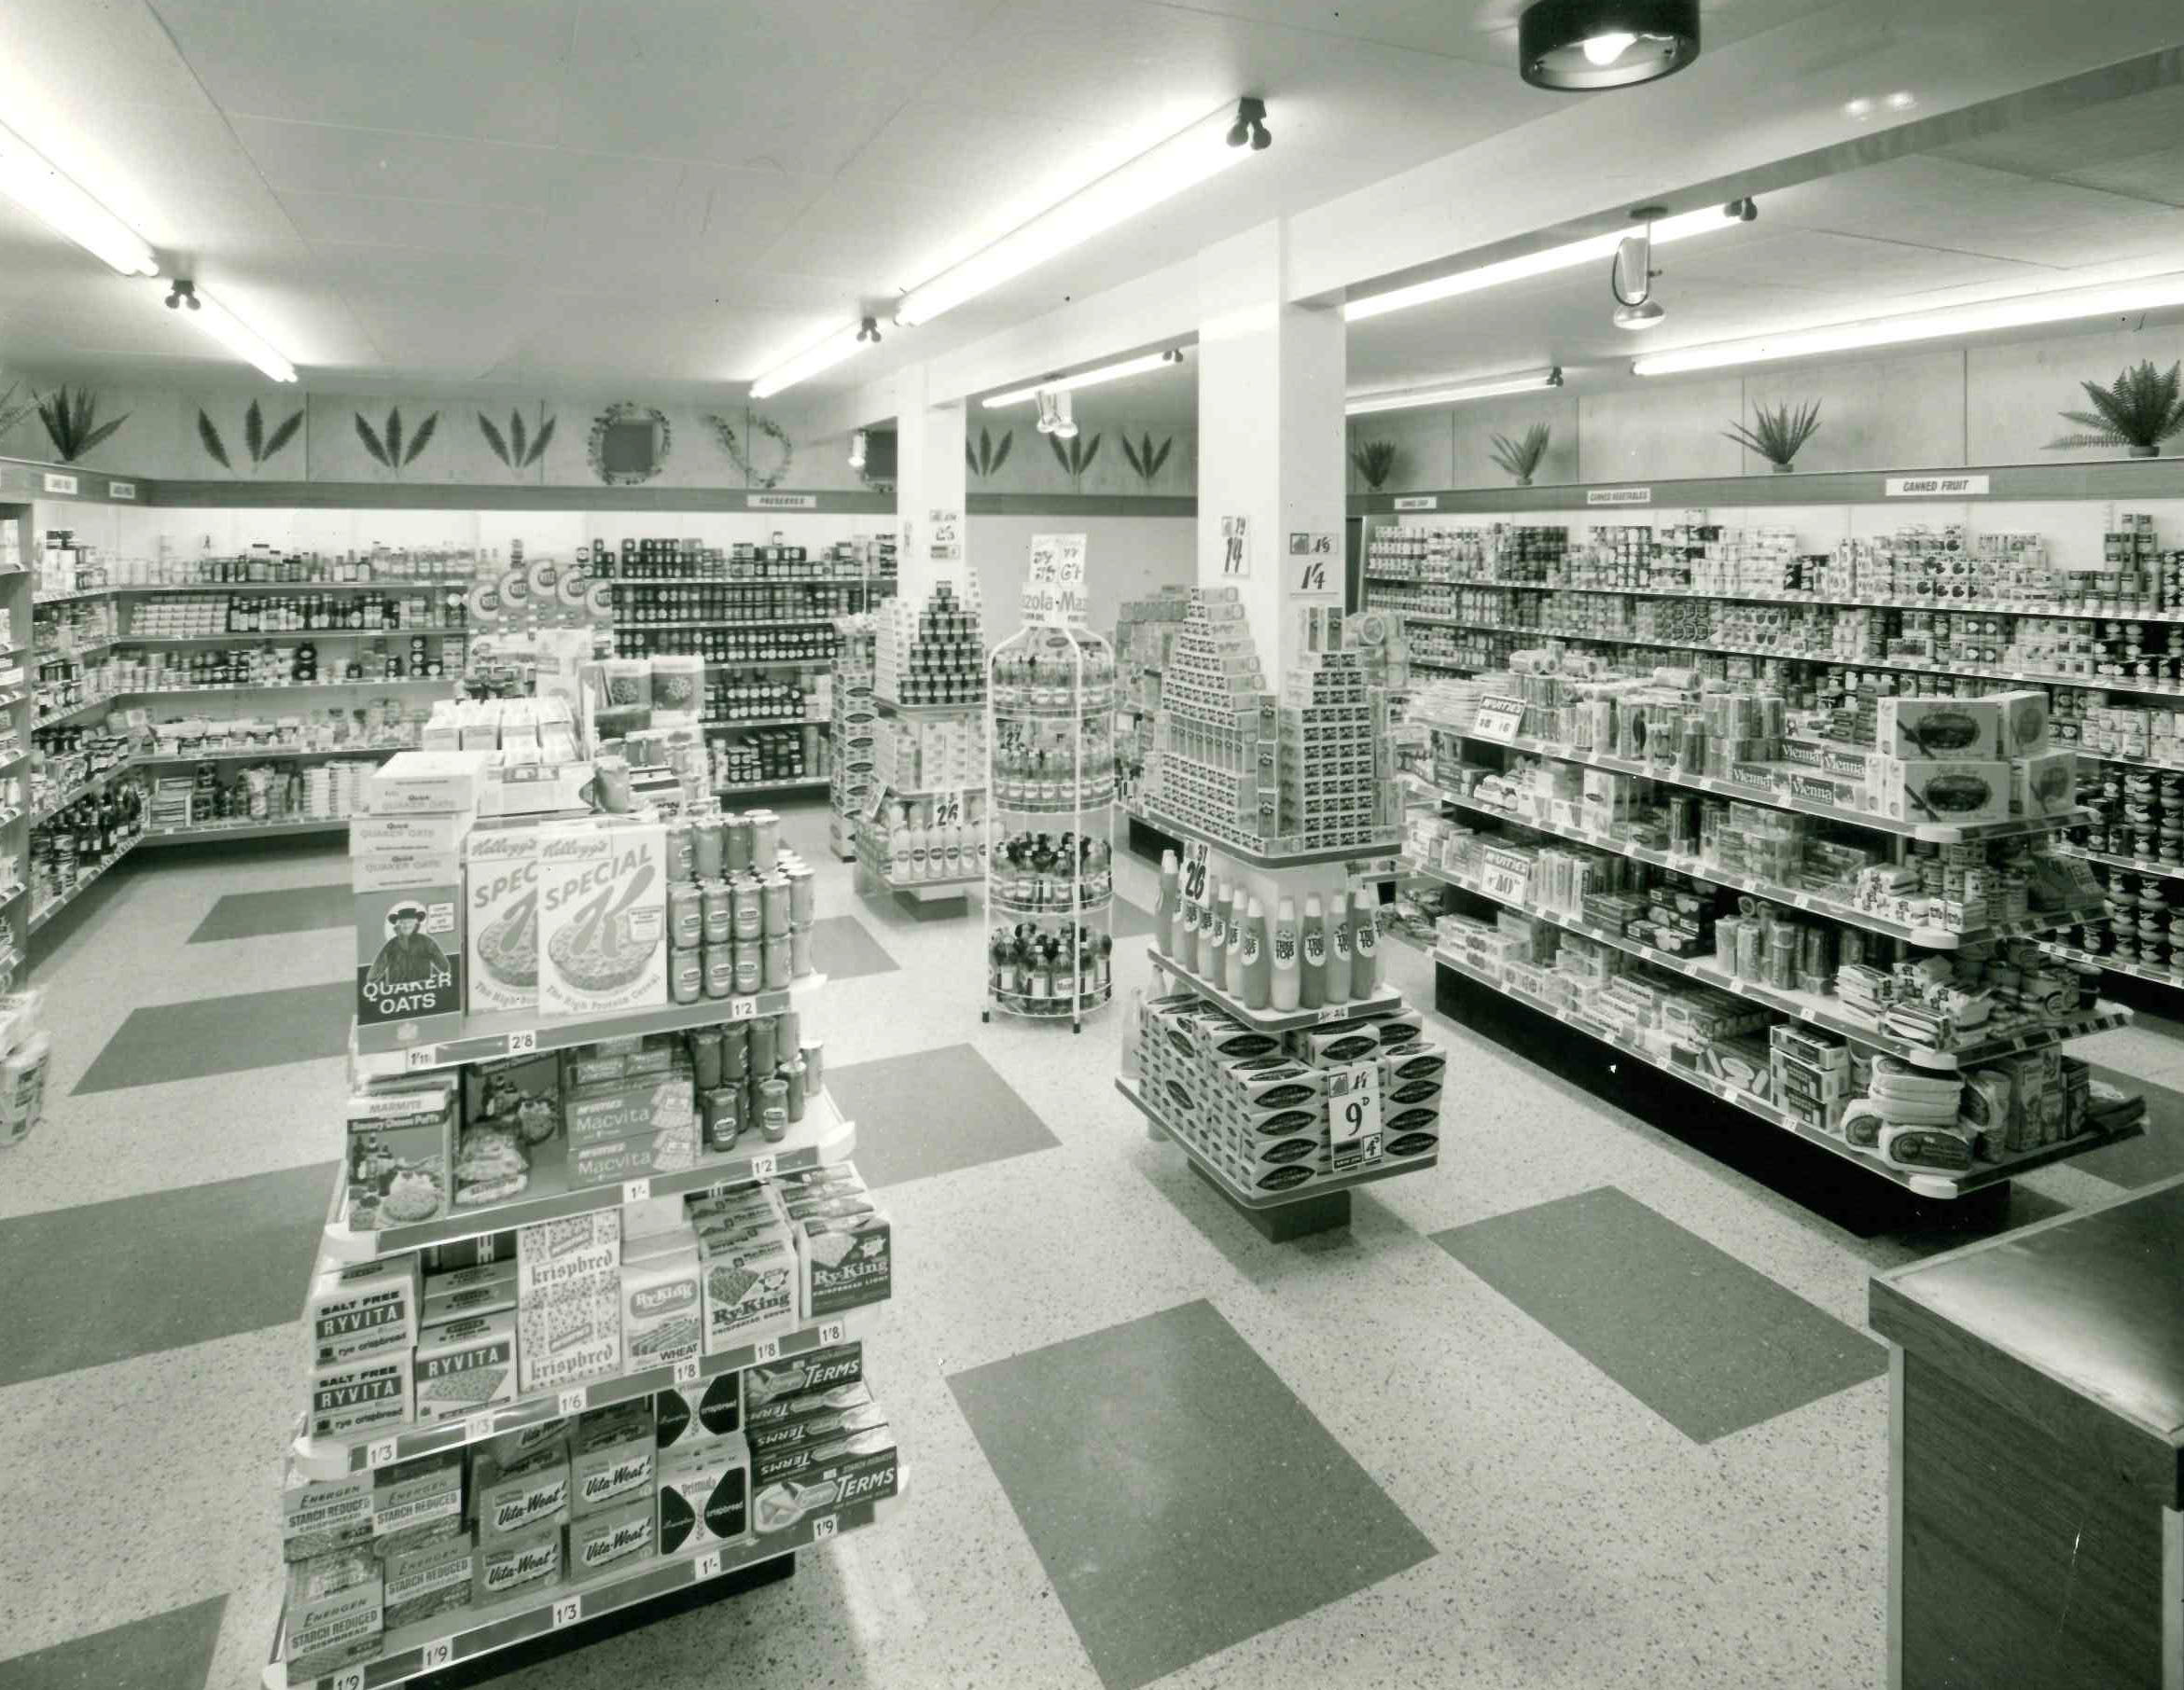 The inside of Williamson and Treadgold store in the Arcade, Bournemouth, in April 1966. Williamson and Treadgold first traded in Bournemouth in 1882. At its peak, the firm had more than 20 stores spanning the area from Fawley to Torquay. Williamson and Tr